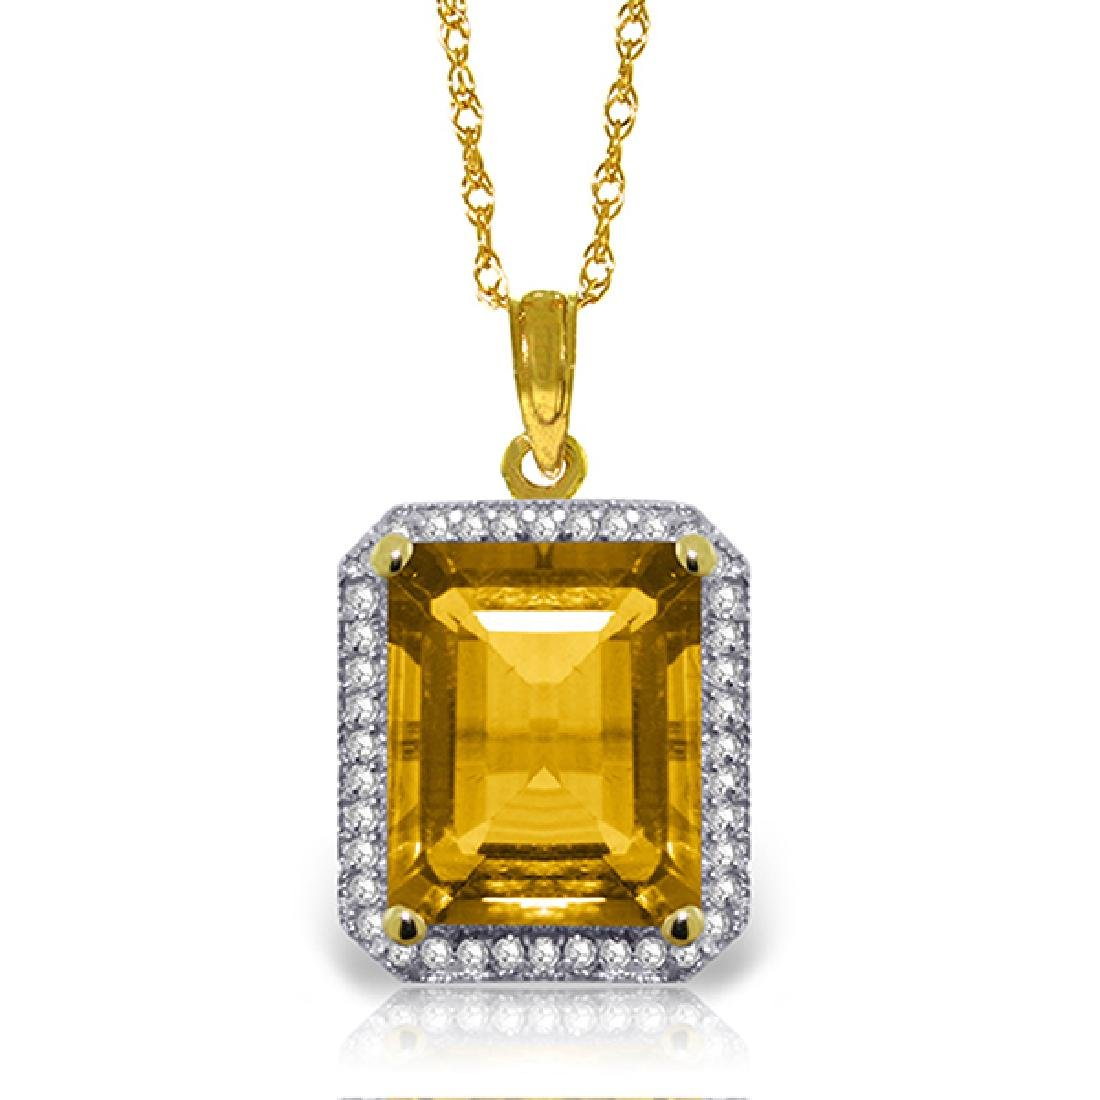 Genuine 5.4 ctw Citrine & Diamond Necklace Jewelry 14KT